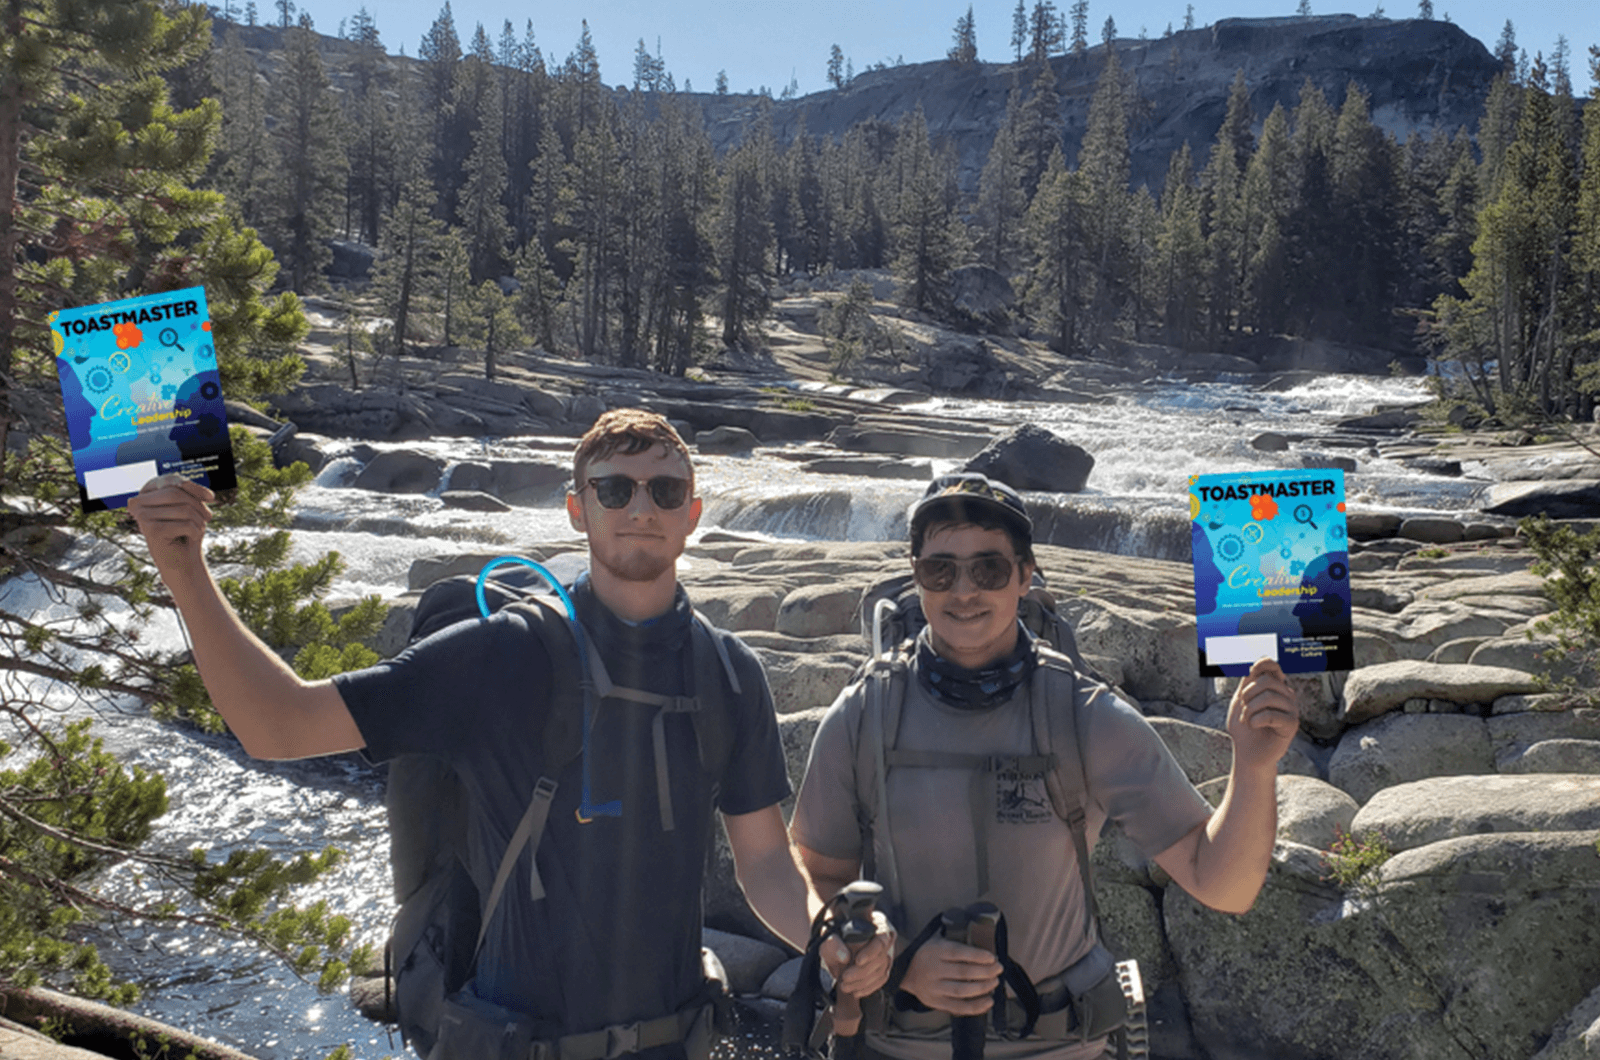 Caleb Thibodeaux and Brandon Killian, of San Diego, California, stop during a four-day, 48.85-mile (79-kilometer) backpacking trip with the Sierra Club through Yosemite National Park in California.